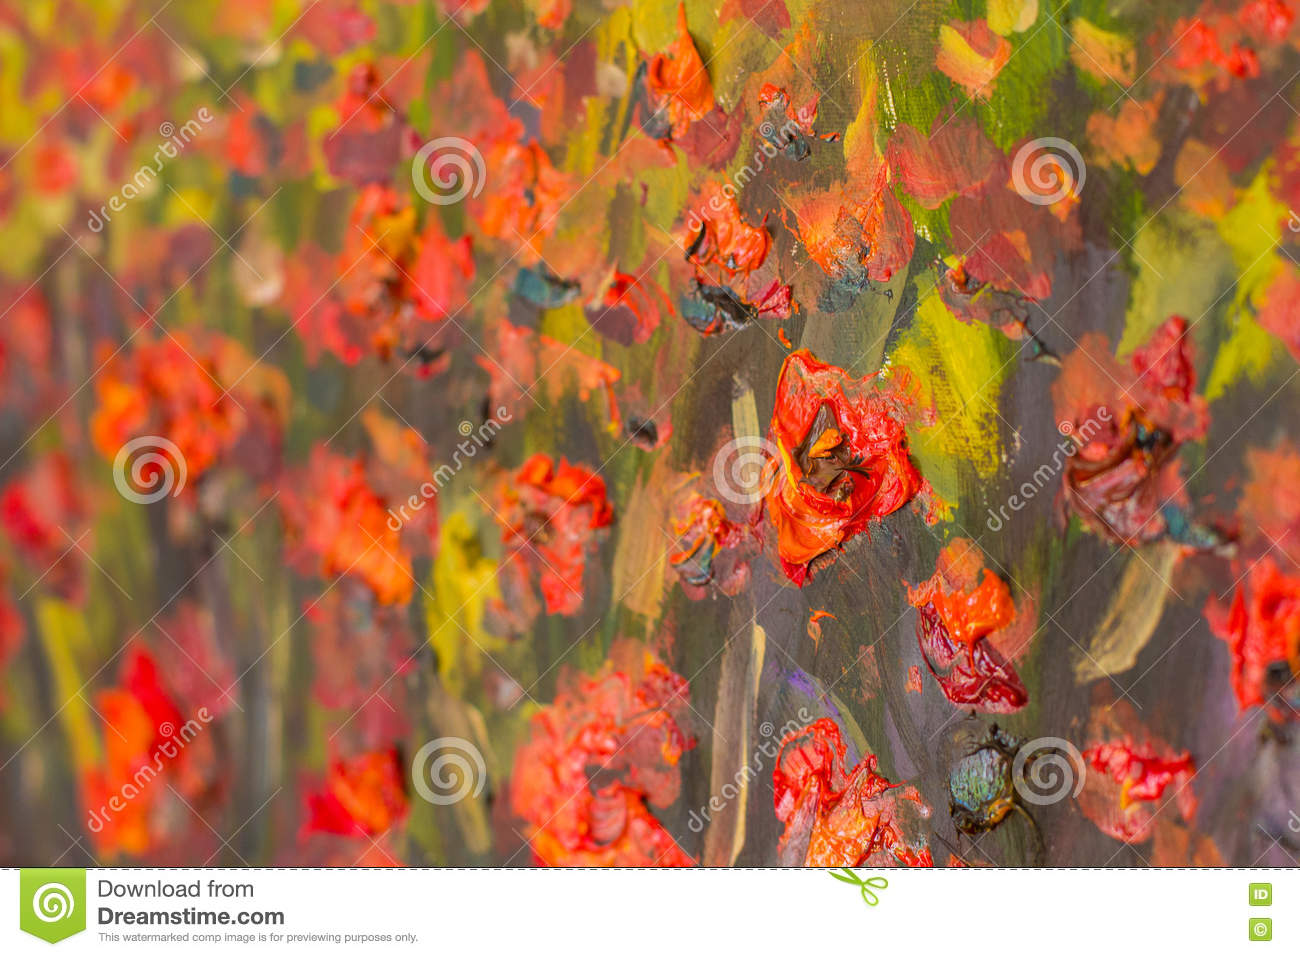 Red Poppies Flowers Painting Macro Close Up Fragment Stock Photo